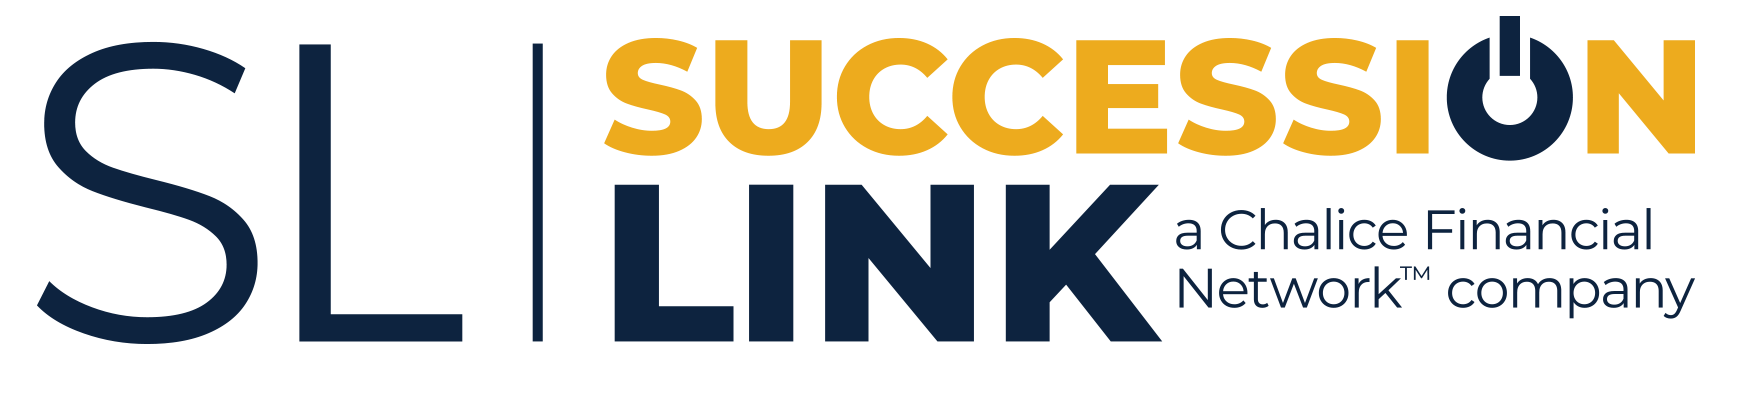 Succession Link  a Chalice Financial Network™ company